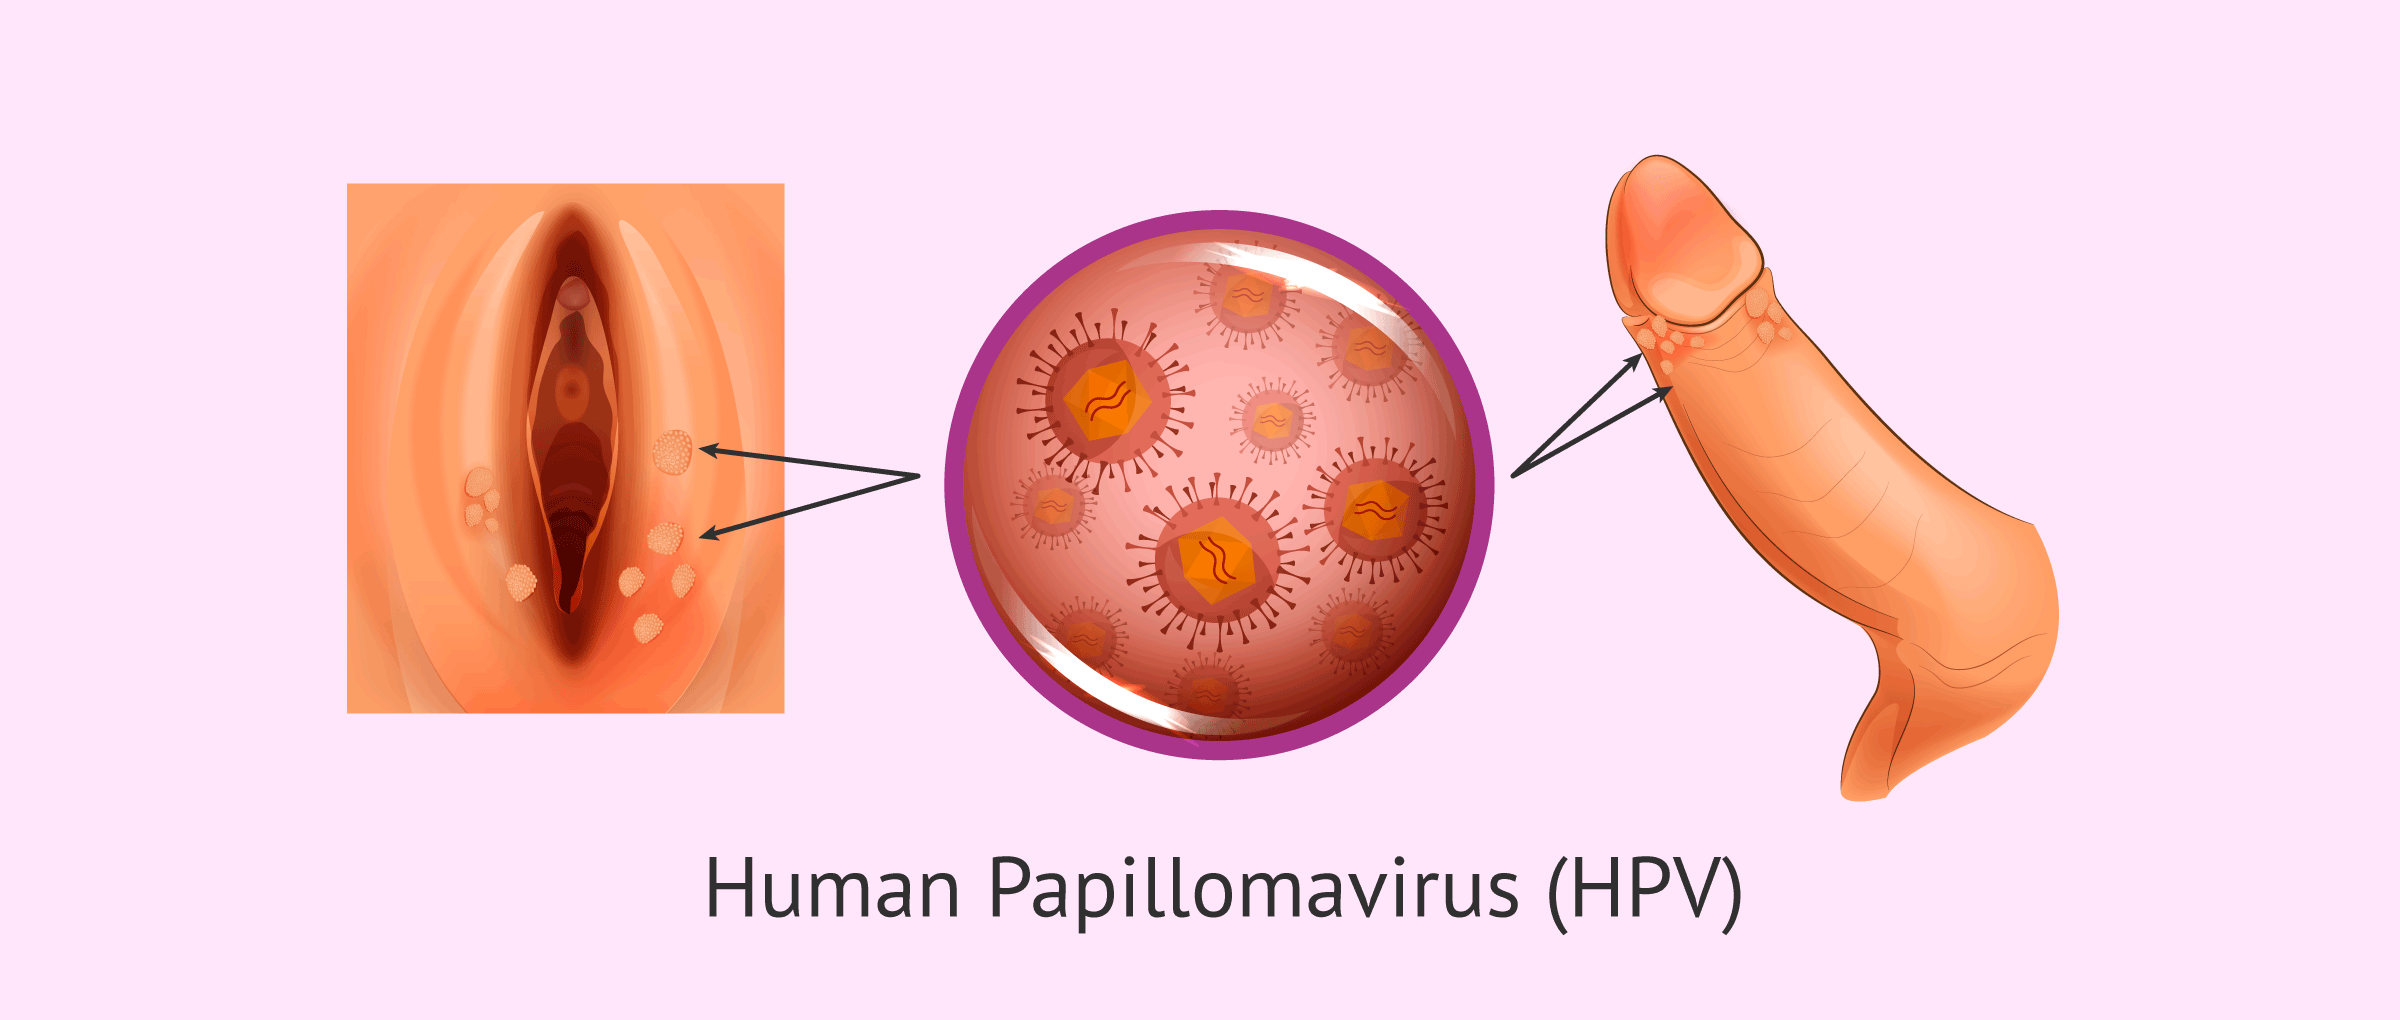 Hpv virus flu like symptoms, Translation of